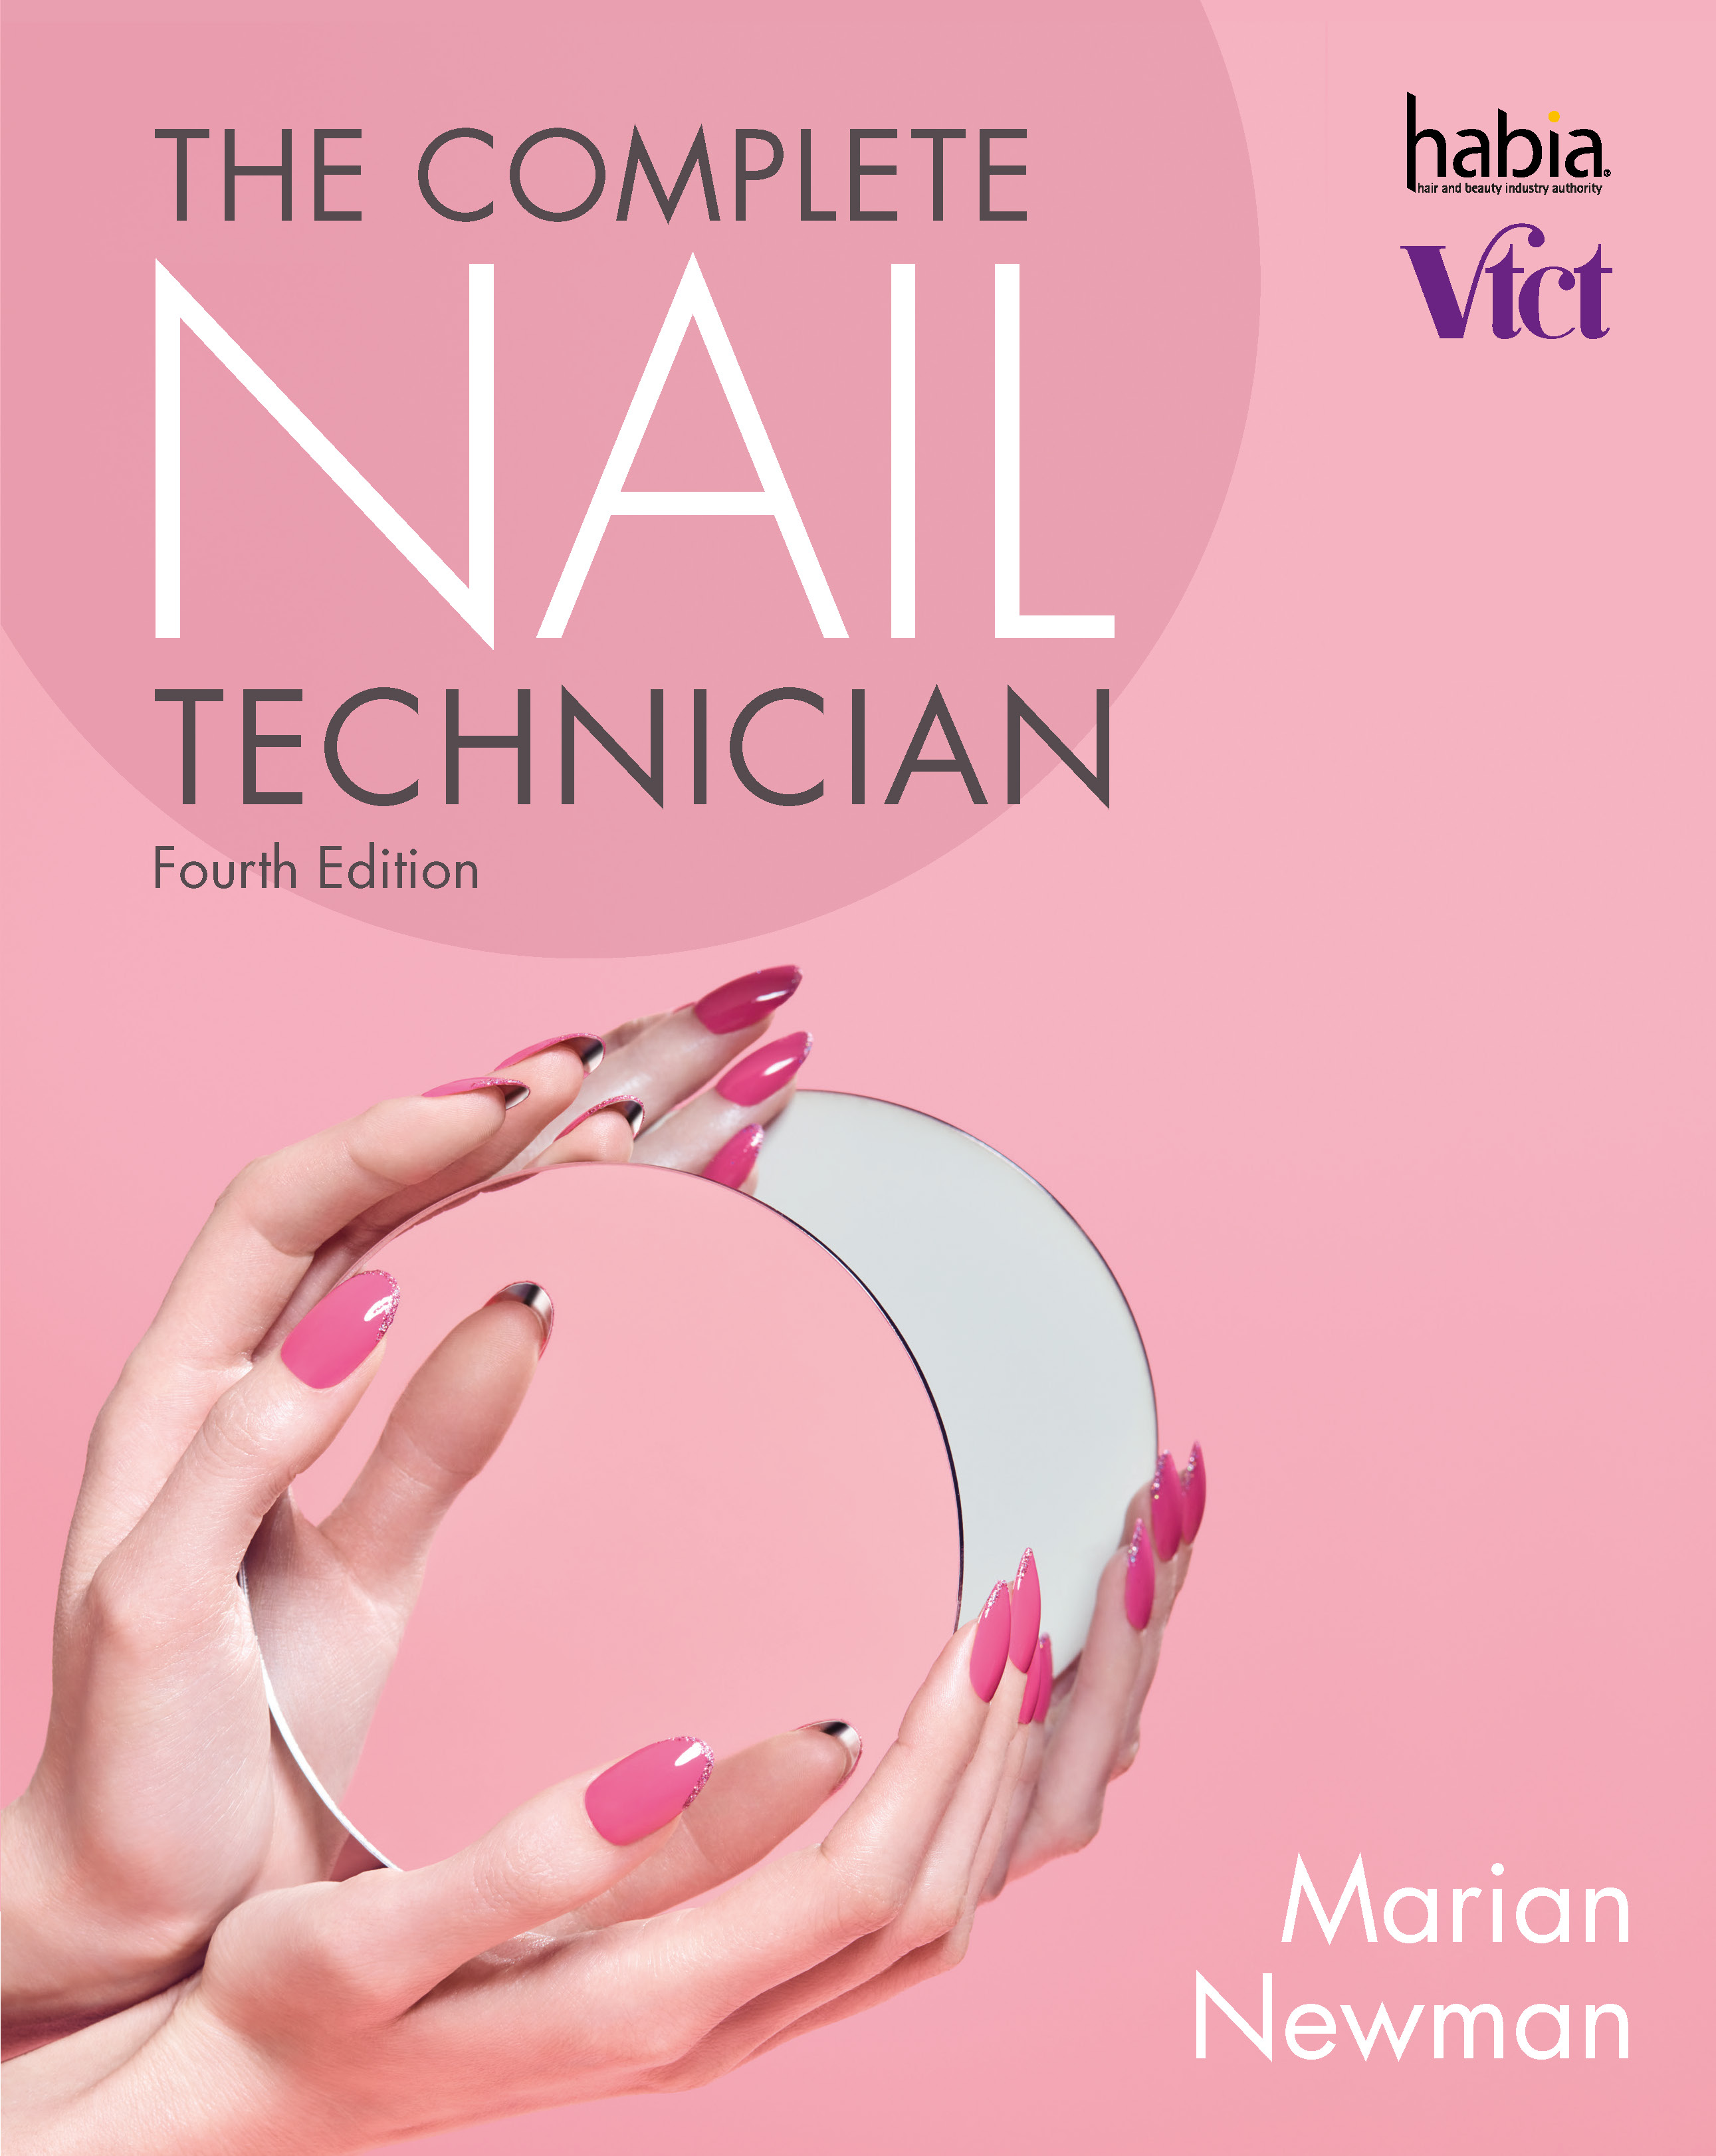 The Complete Nail Technician 4th edition by Marian Newman